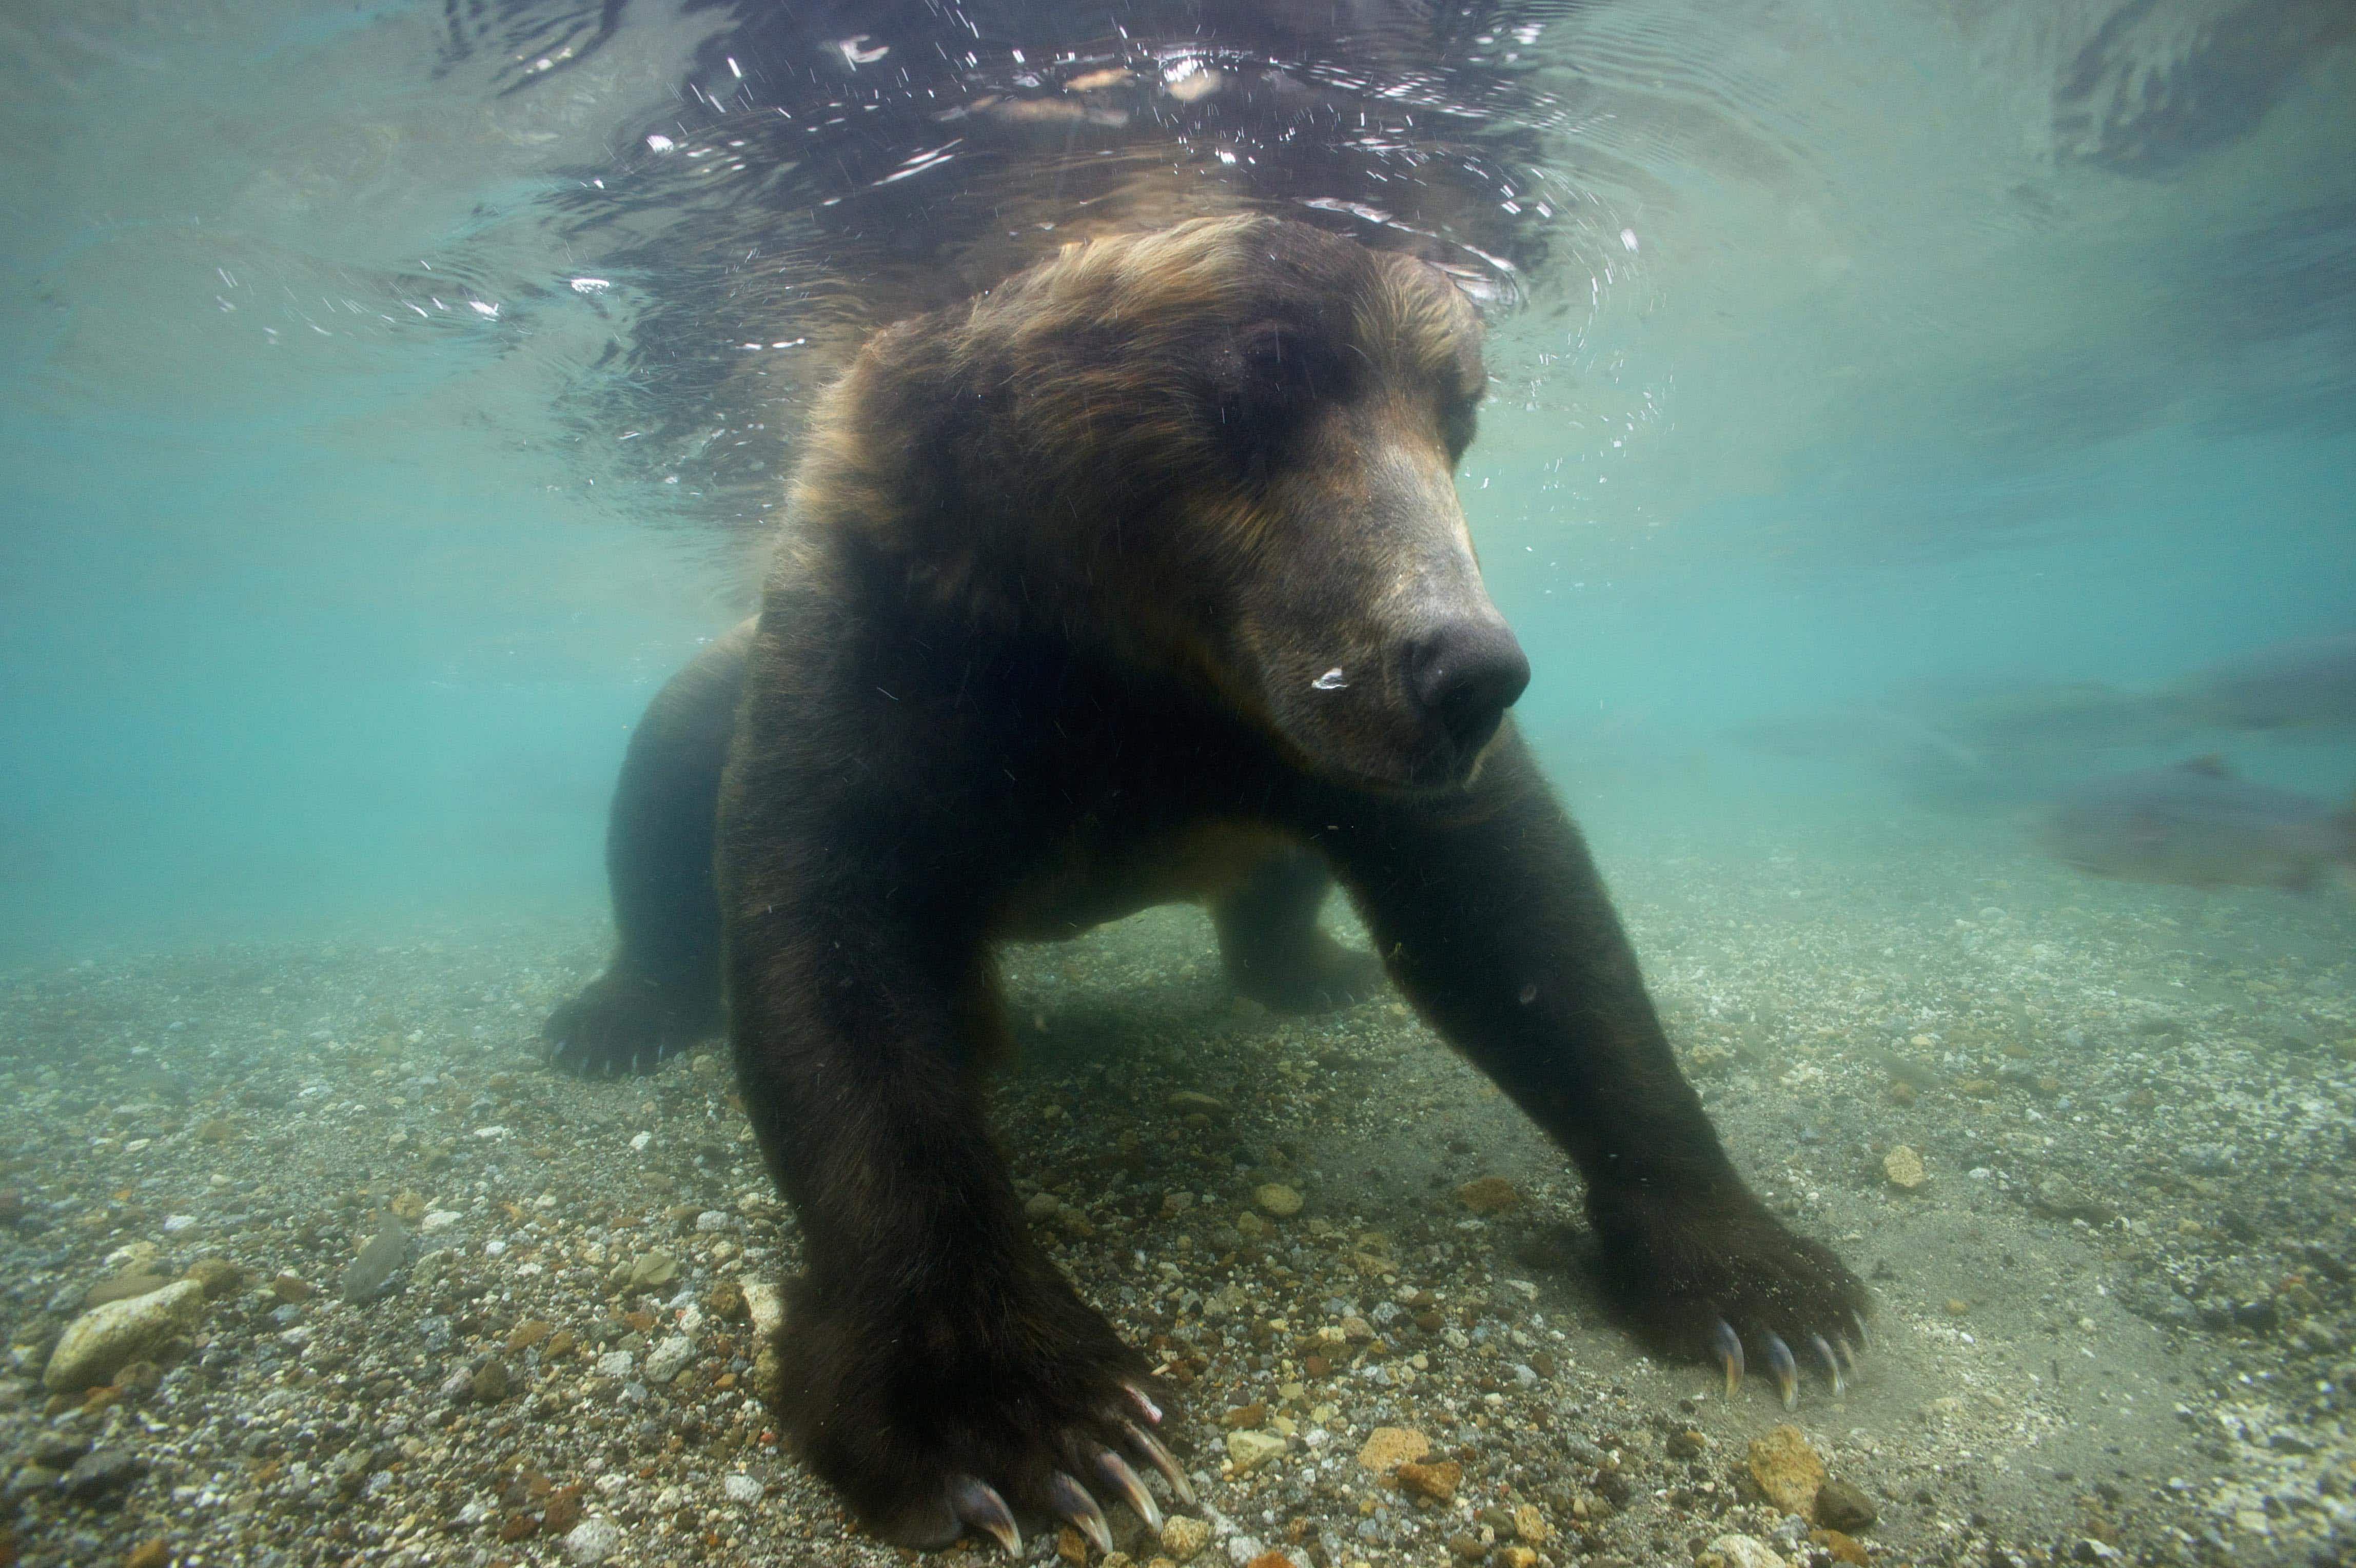 Watch a huge Kamchatka brown bear hunting for salmon underwater in a Russian river